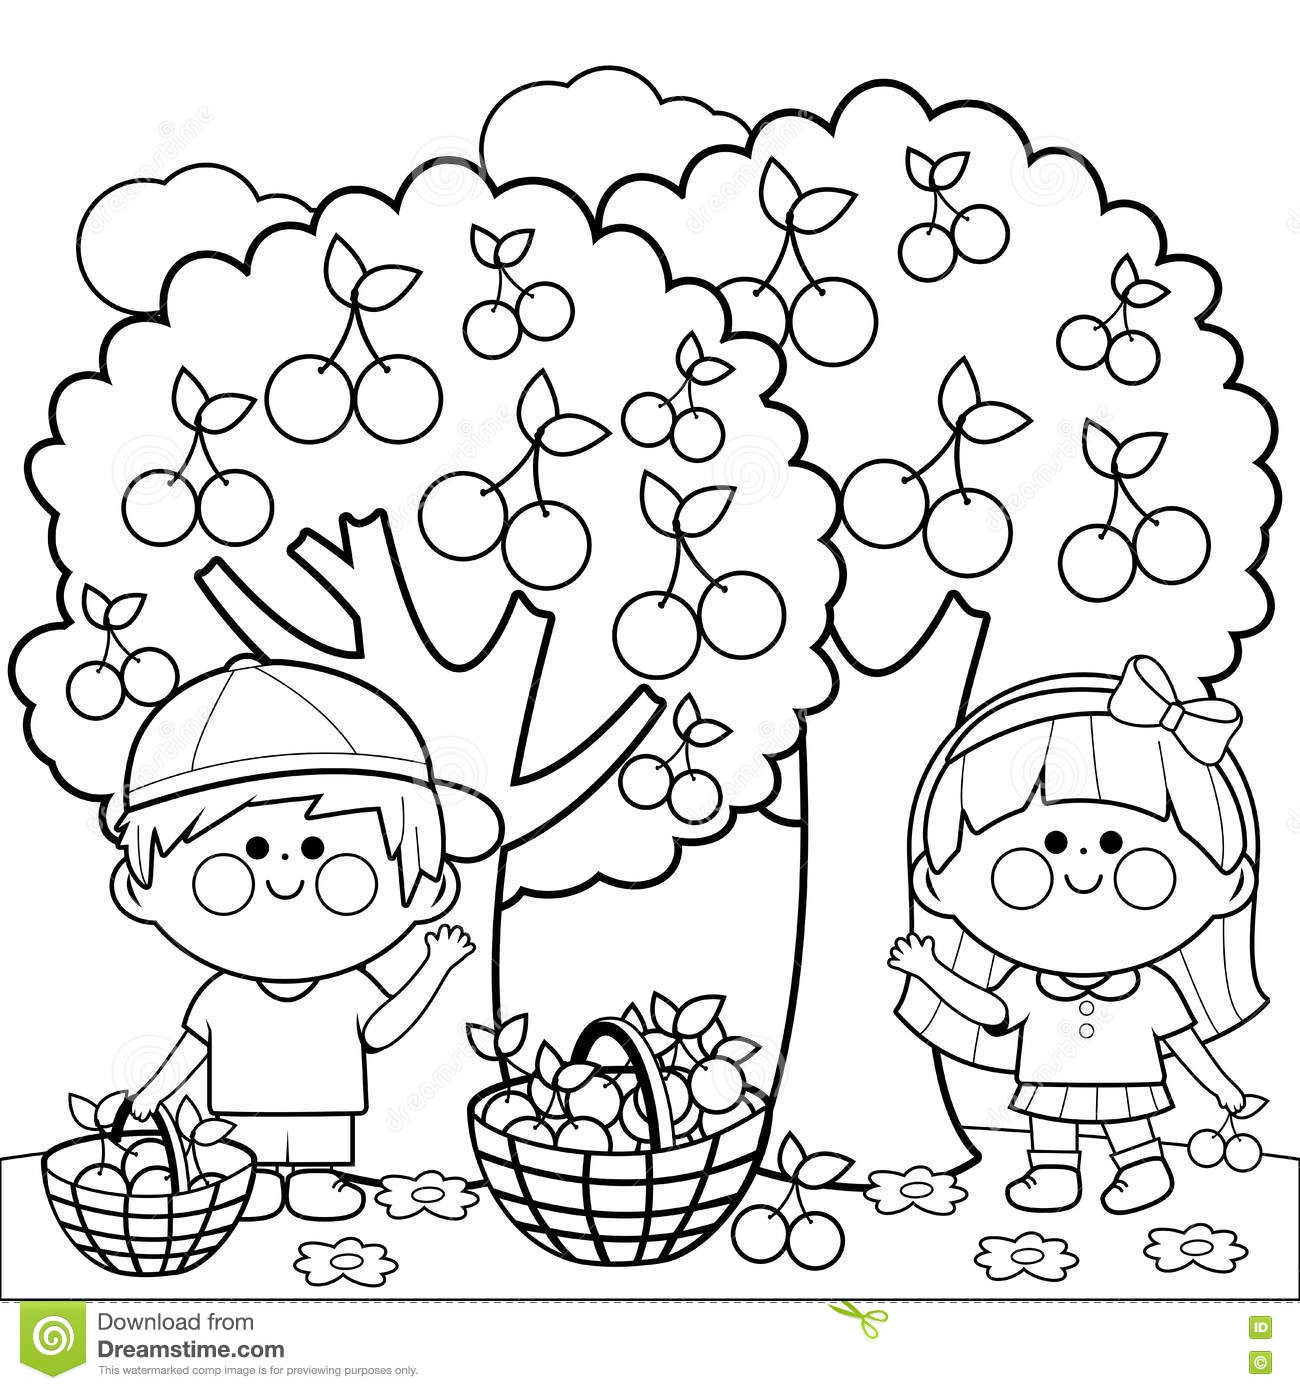 children picking apples coloring pages - photo#5